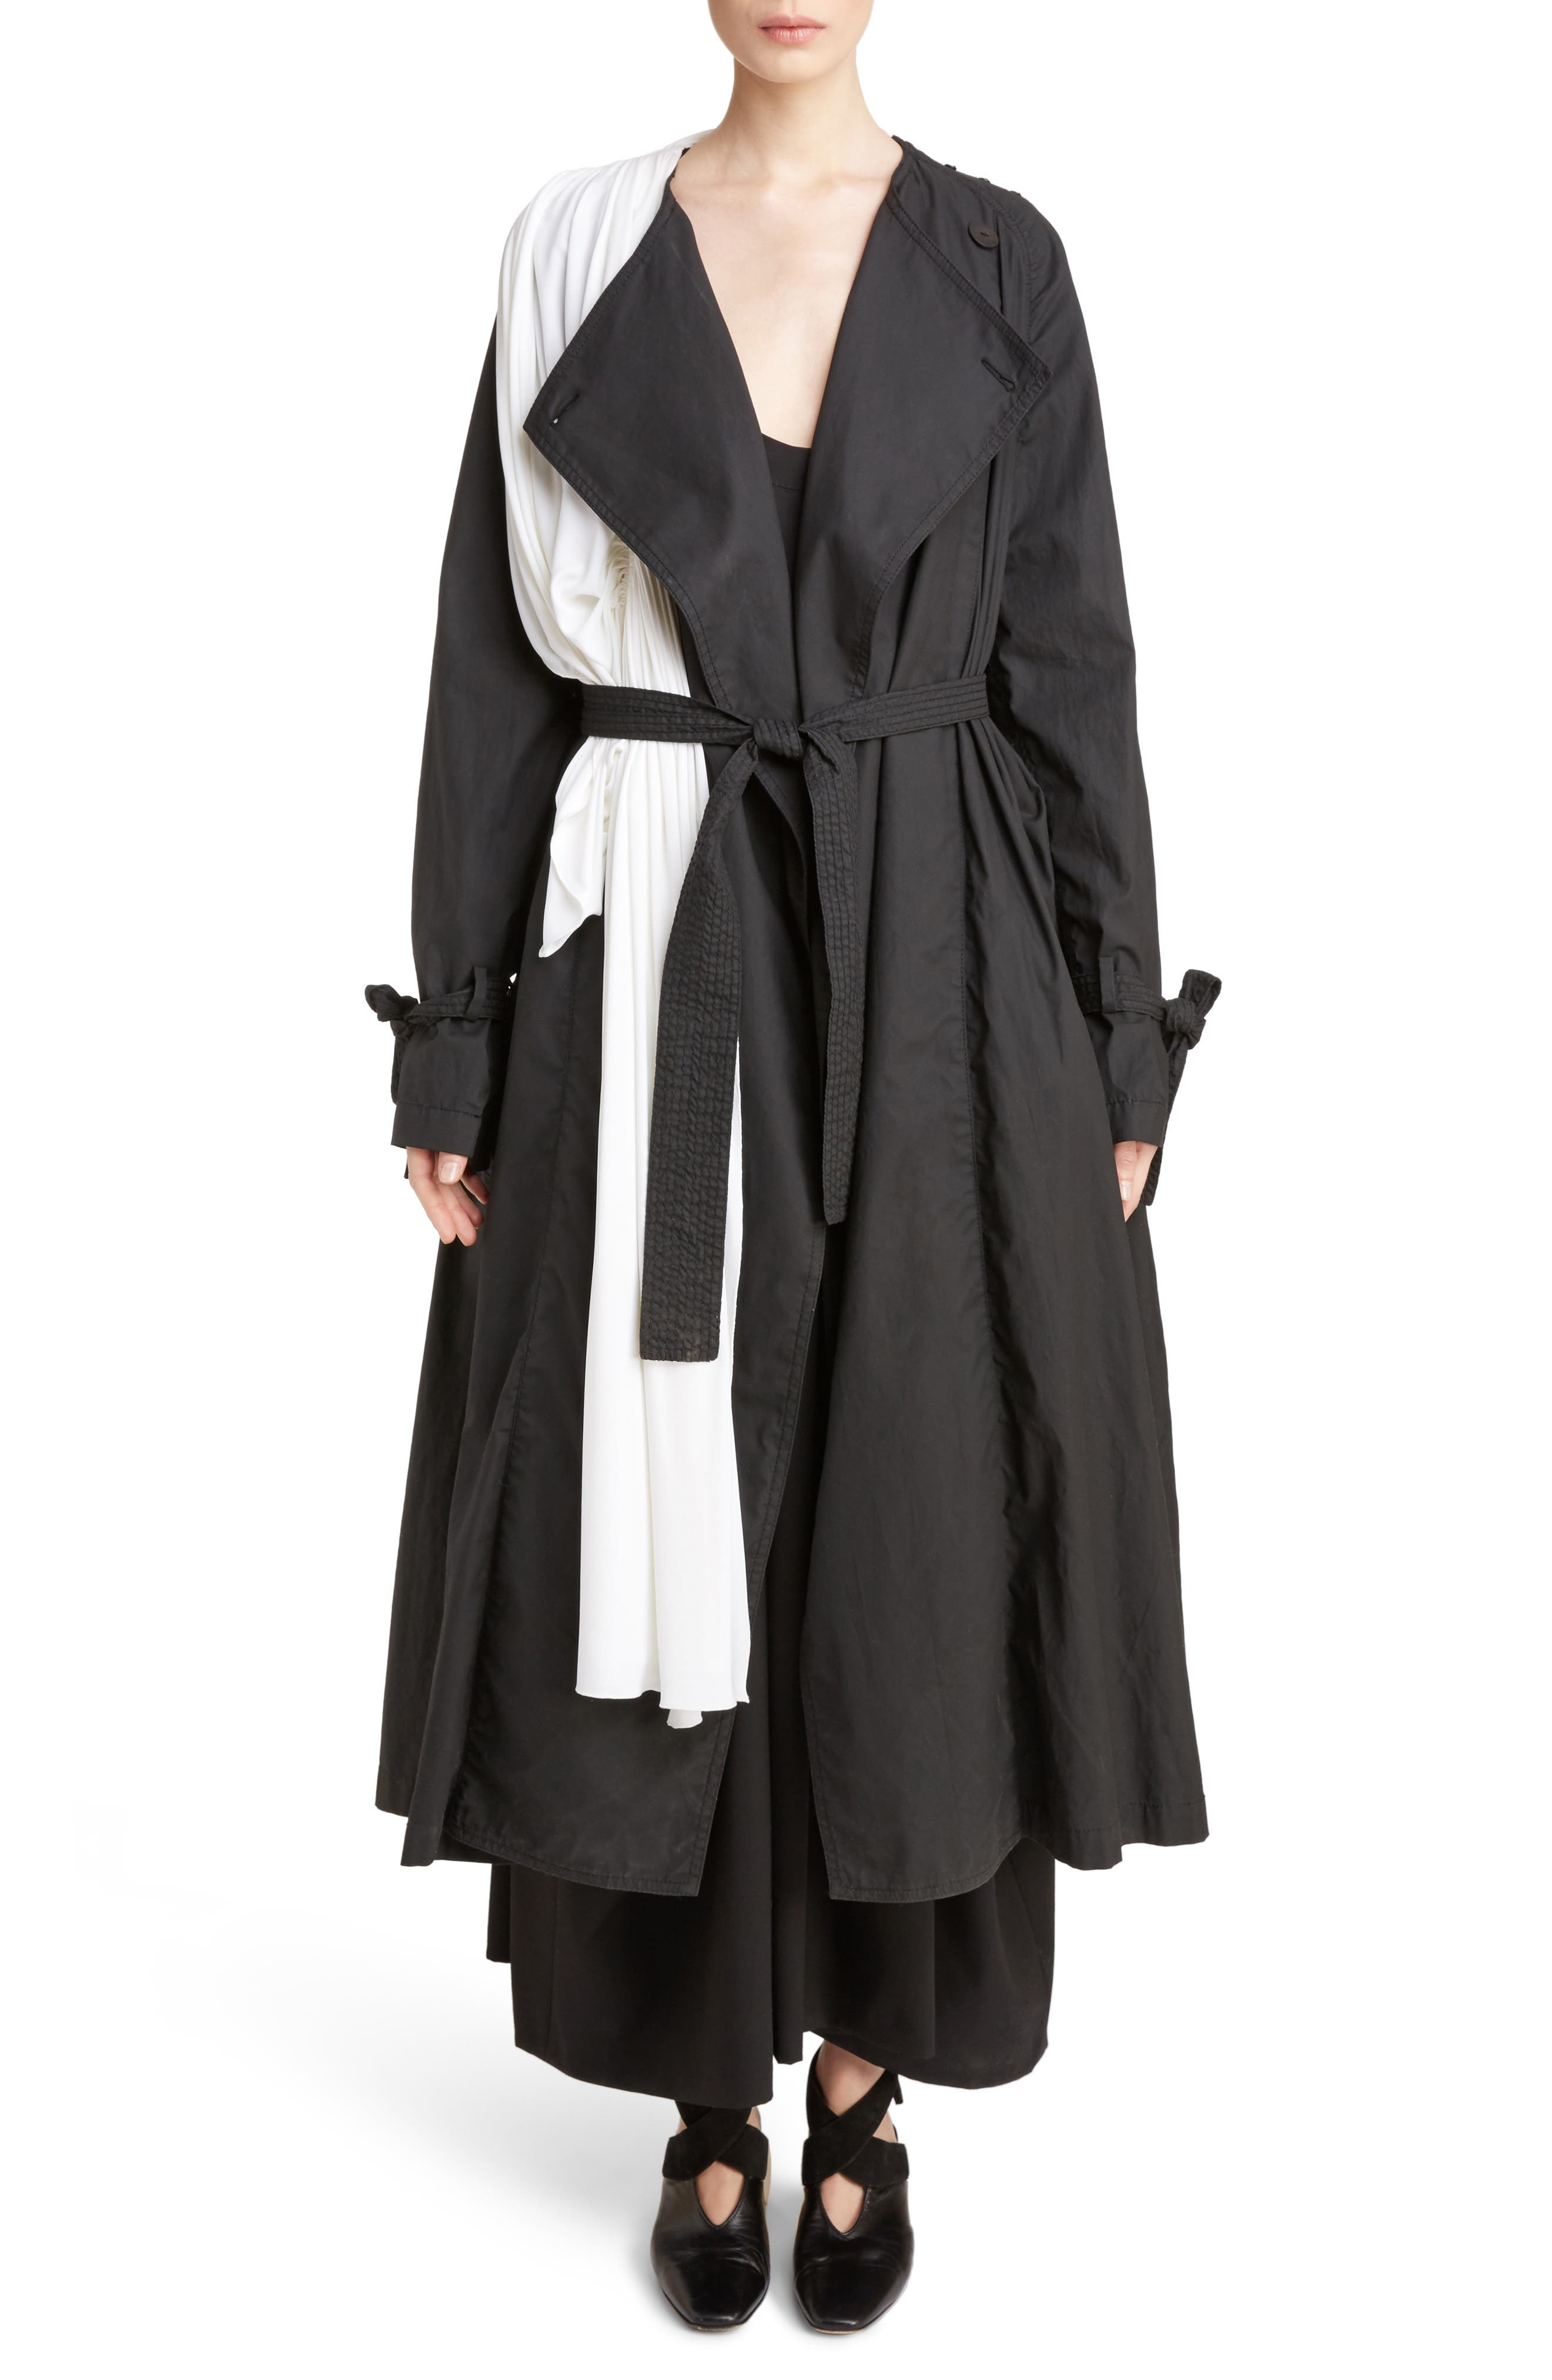 J.W.ANDERSON Draped Collar Trench Coat,                             Alternate thumbnail 7, color,                             001